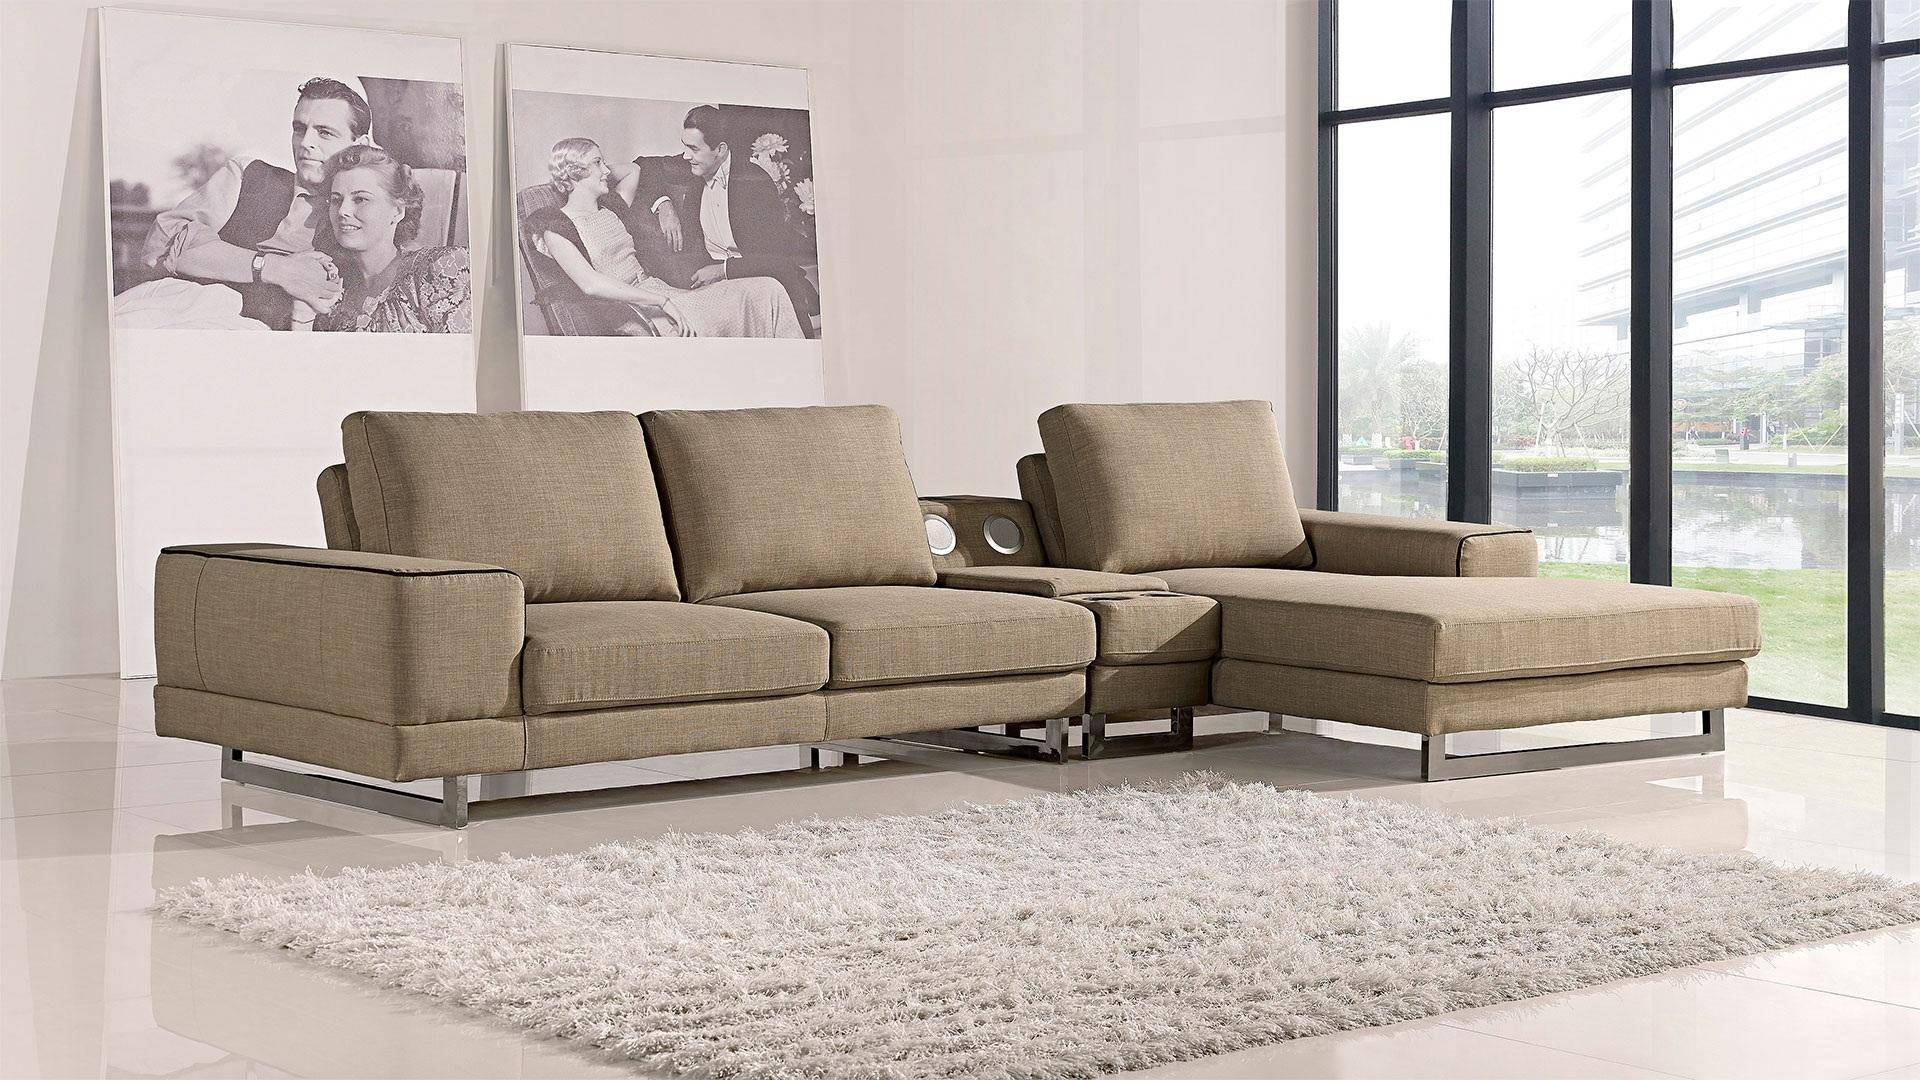 At Home USA Adele Ultra Modern Beige Fabric Sectional Sofa ...